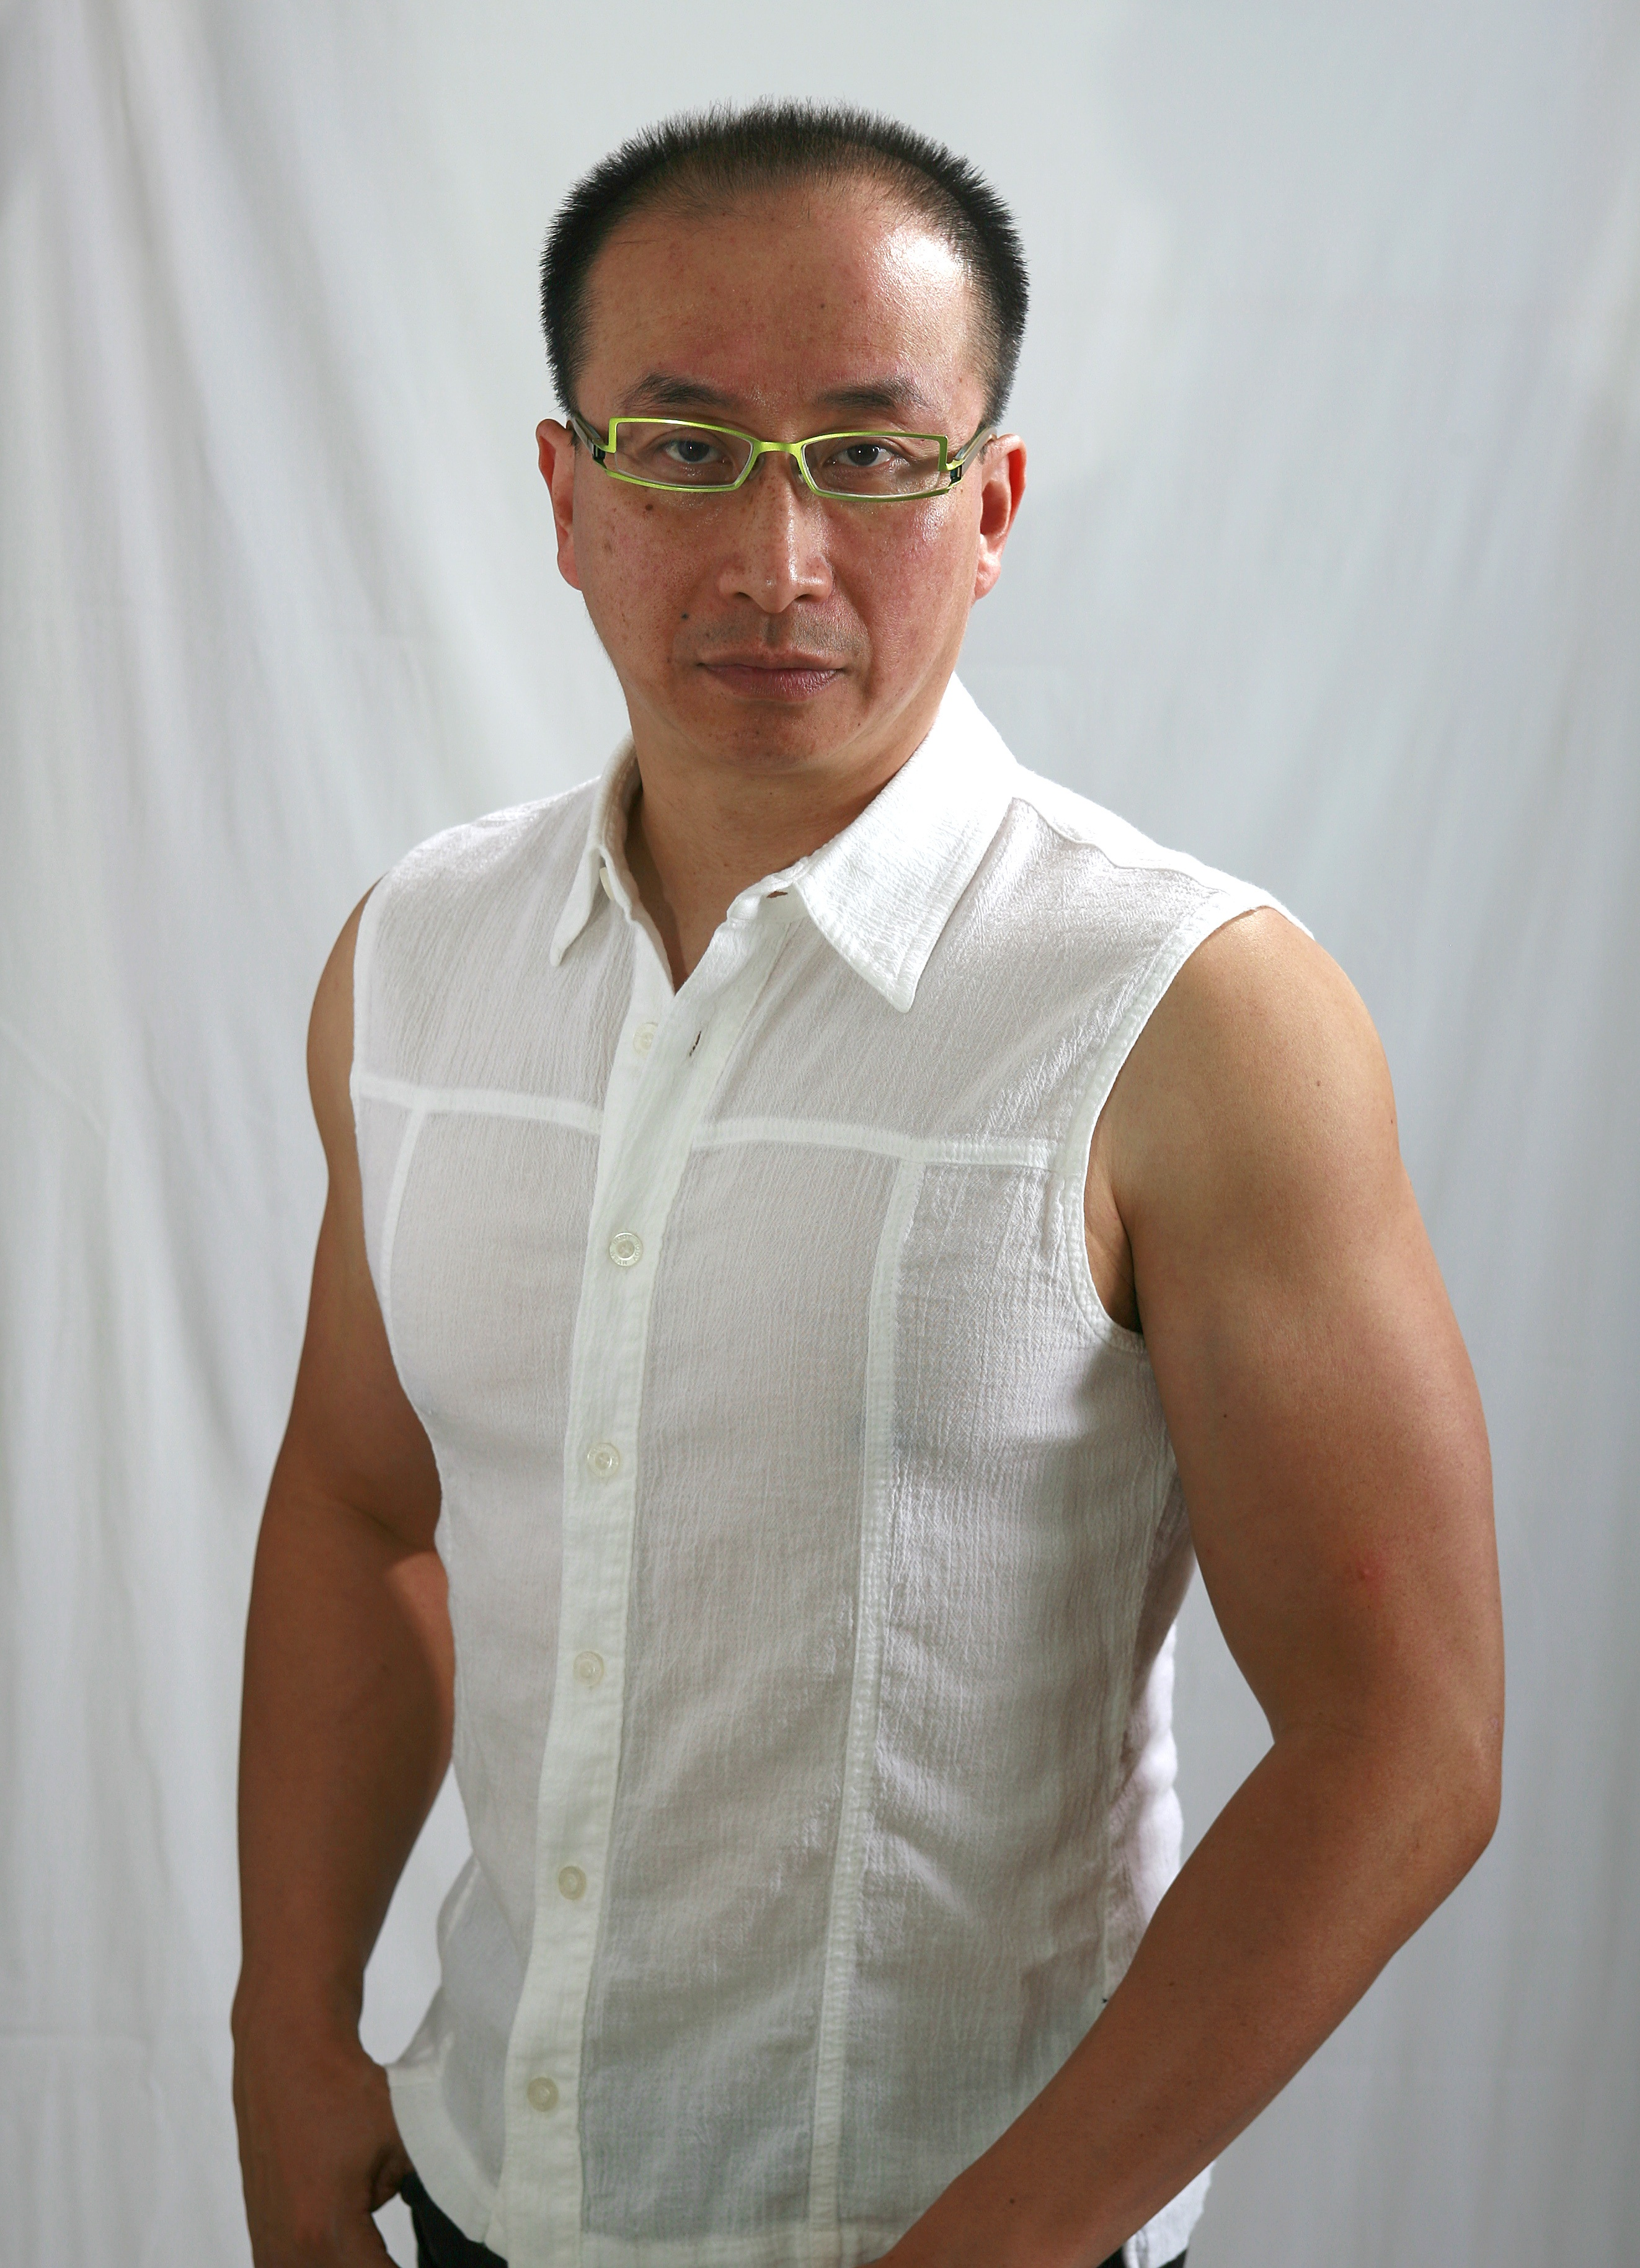 asian single men in faith Orlando's best 100% free asian online dating site meet cute asian singles in florida with our free orlando asian dating service loads of single asian men and women are looking for their match on the internet's best website for meeting asians in orlando.